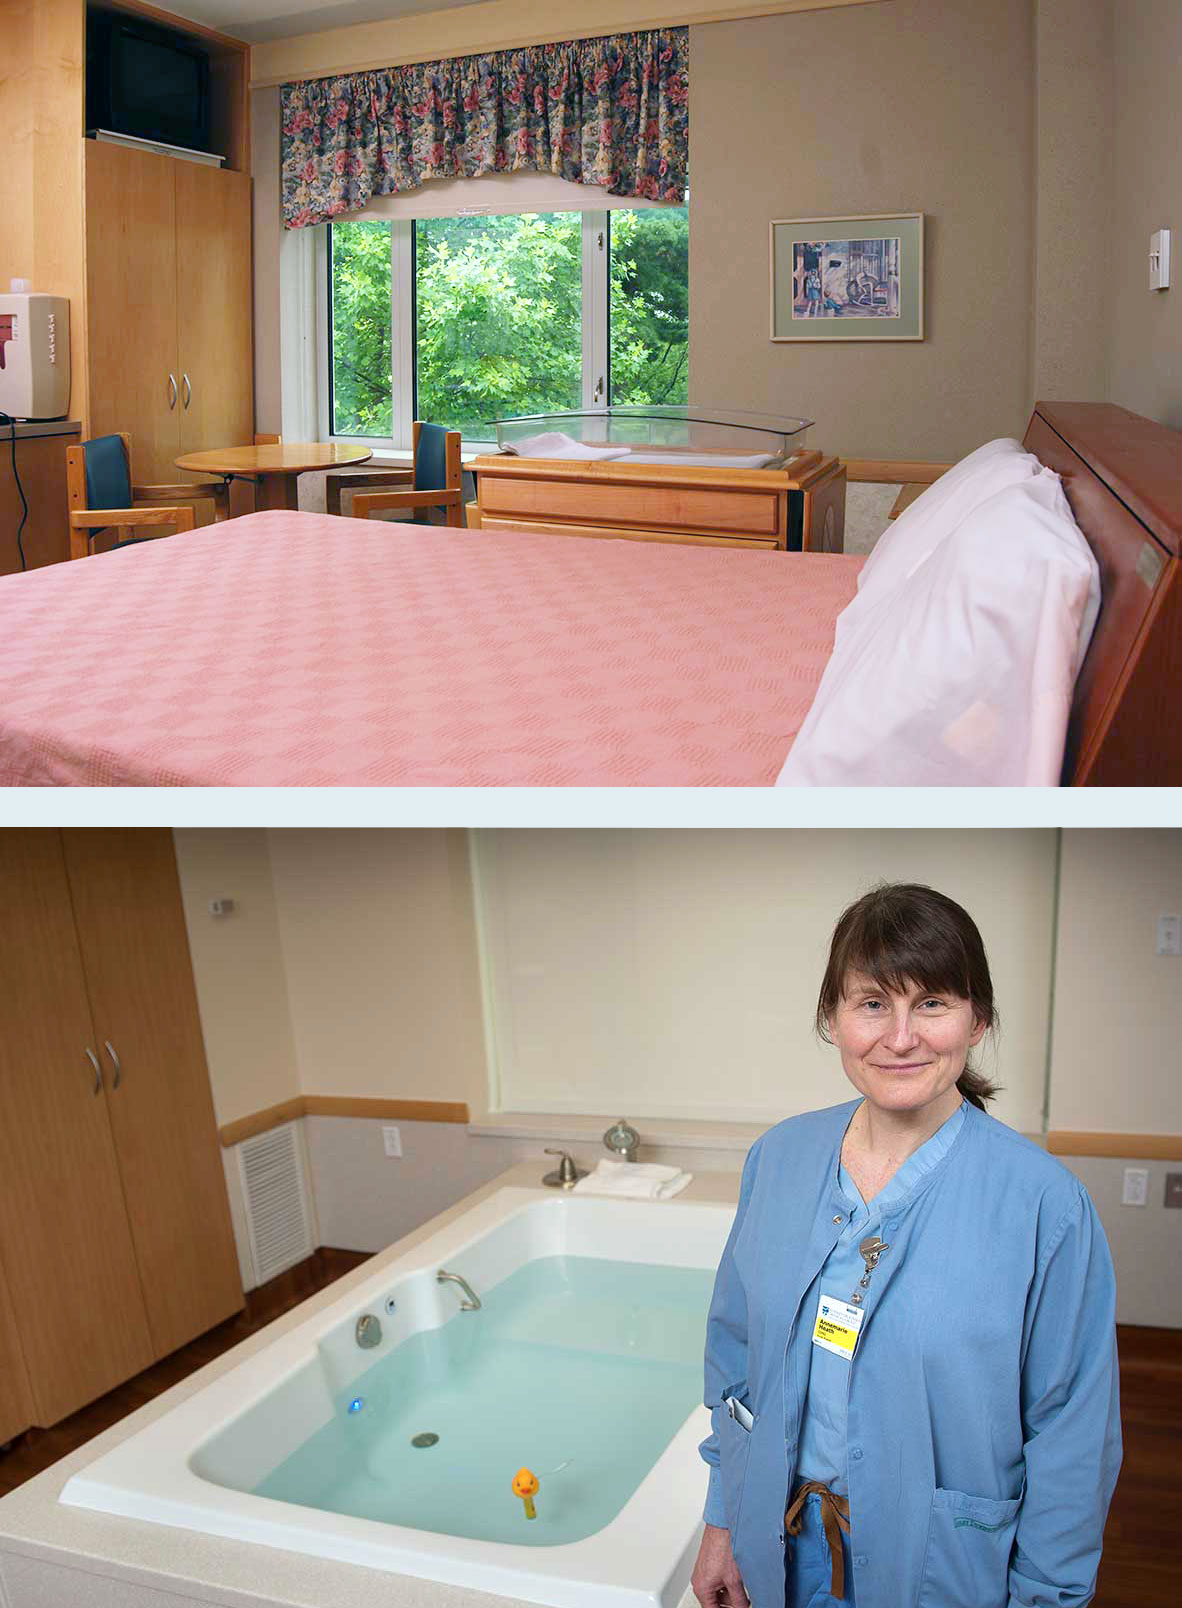 Patient room and Certified Nurse Midwife Annemarie Heath with new hydrotherapy tub in the Childbirth Center at Cooley Dickinson Hospital, 30 Locust Street, Northampton, MA 01060.